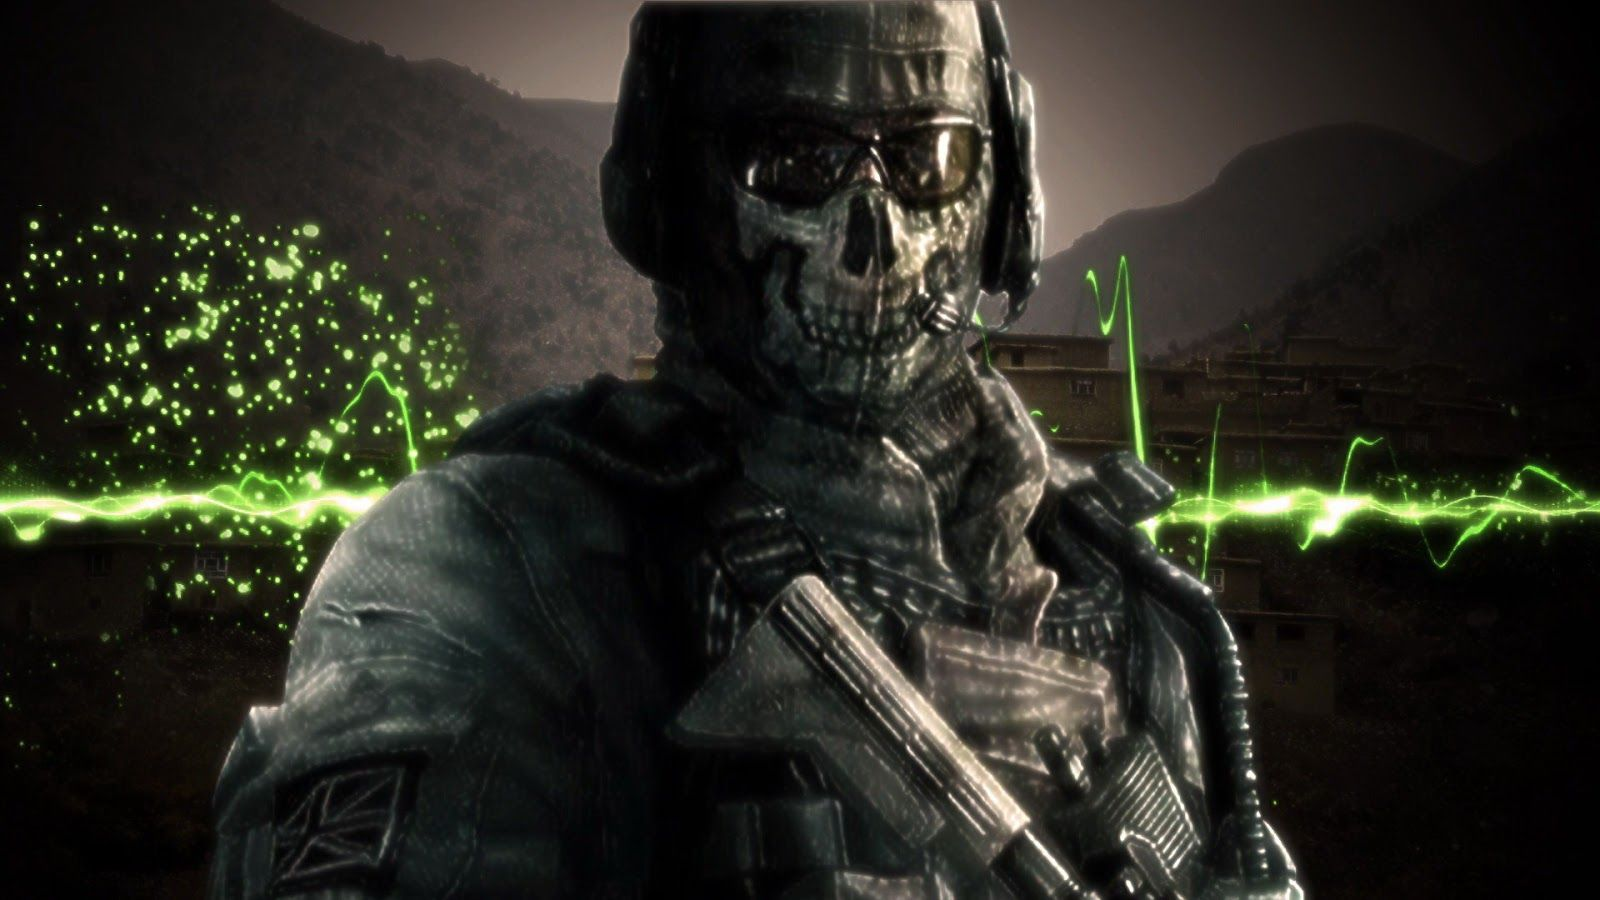 Call Of Duty Ghosts Wallpaper Call Of Duty Ghosts Call Of Duty Ghost Soldiers